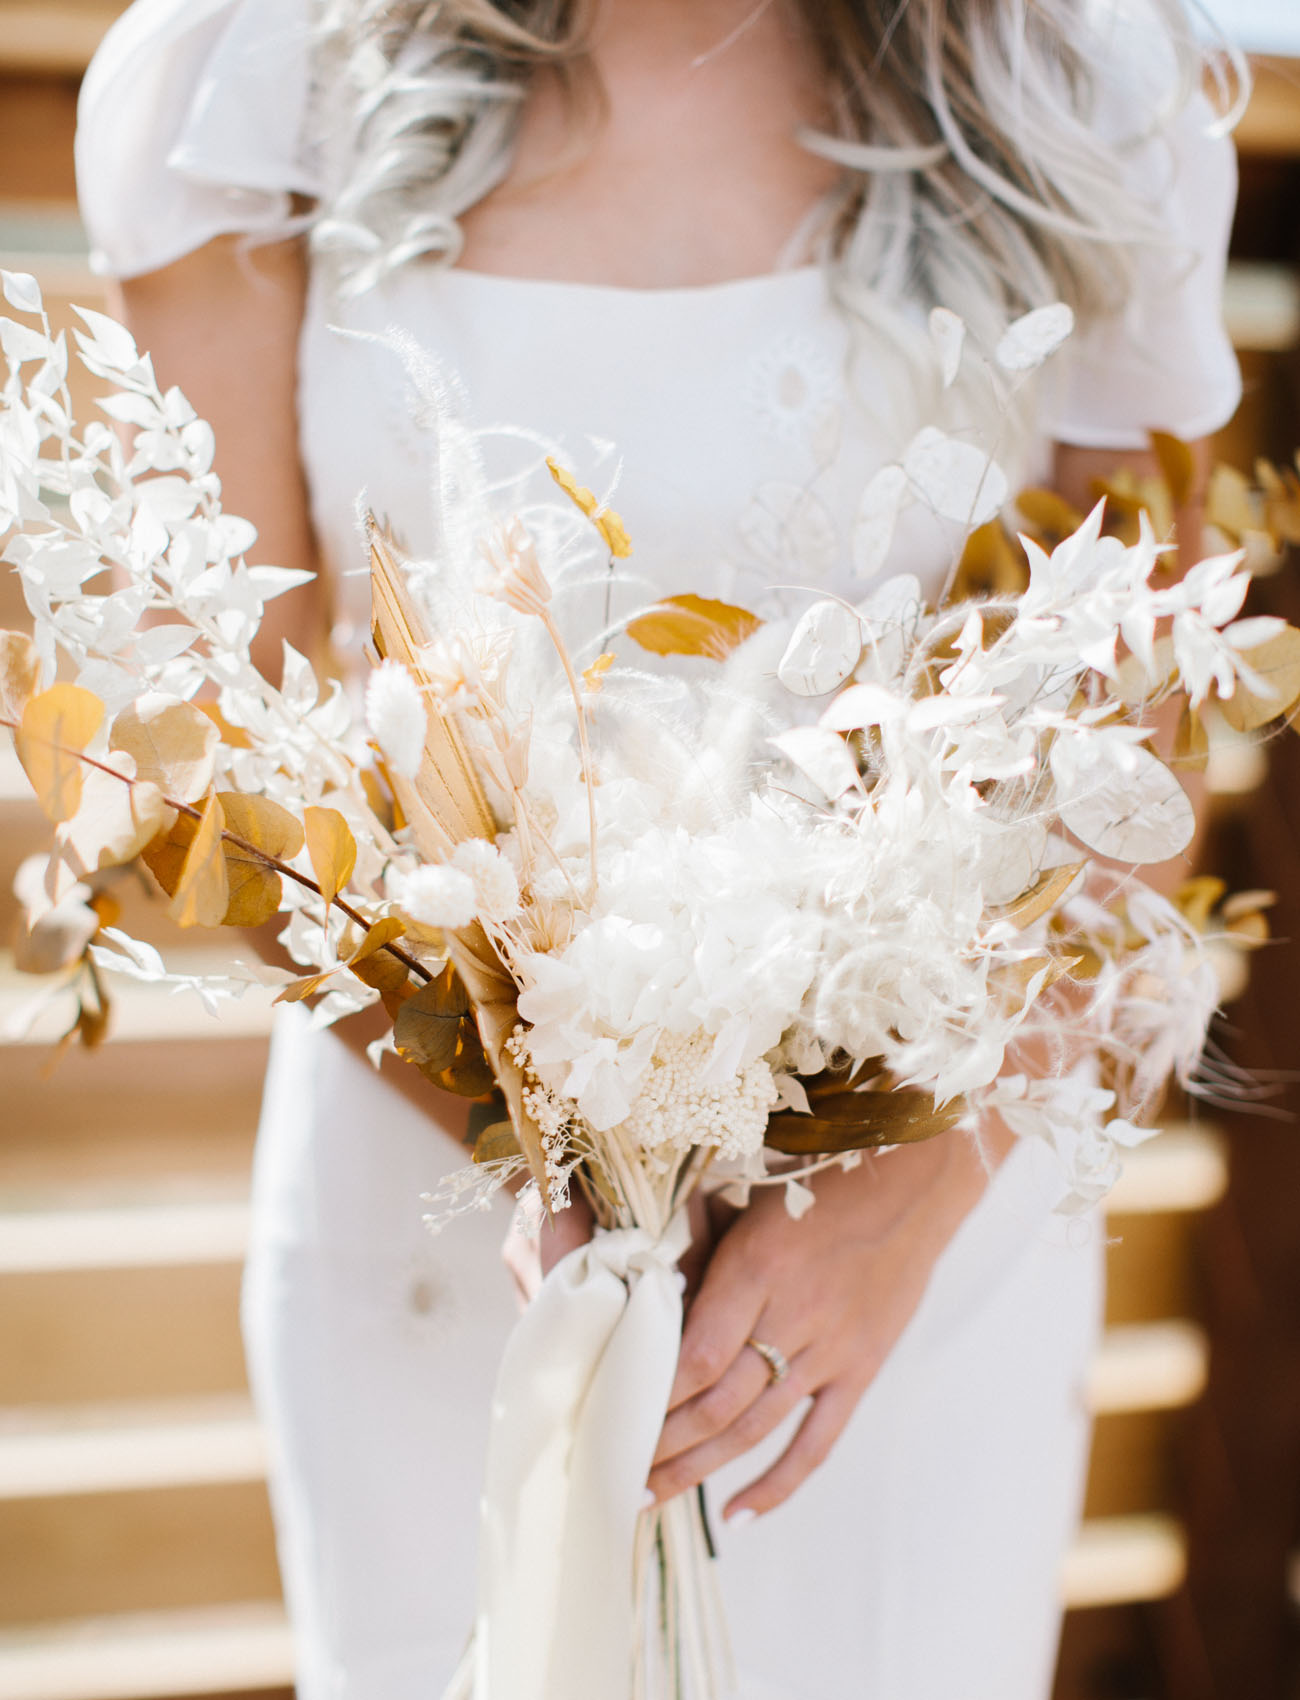 The wedding bouquet was composed of dried blooms and foliage